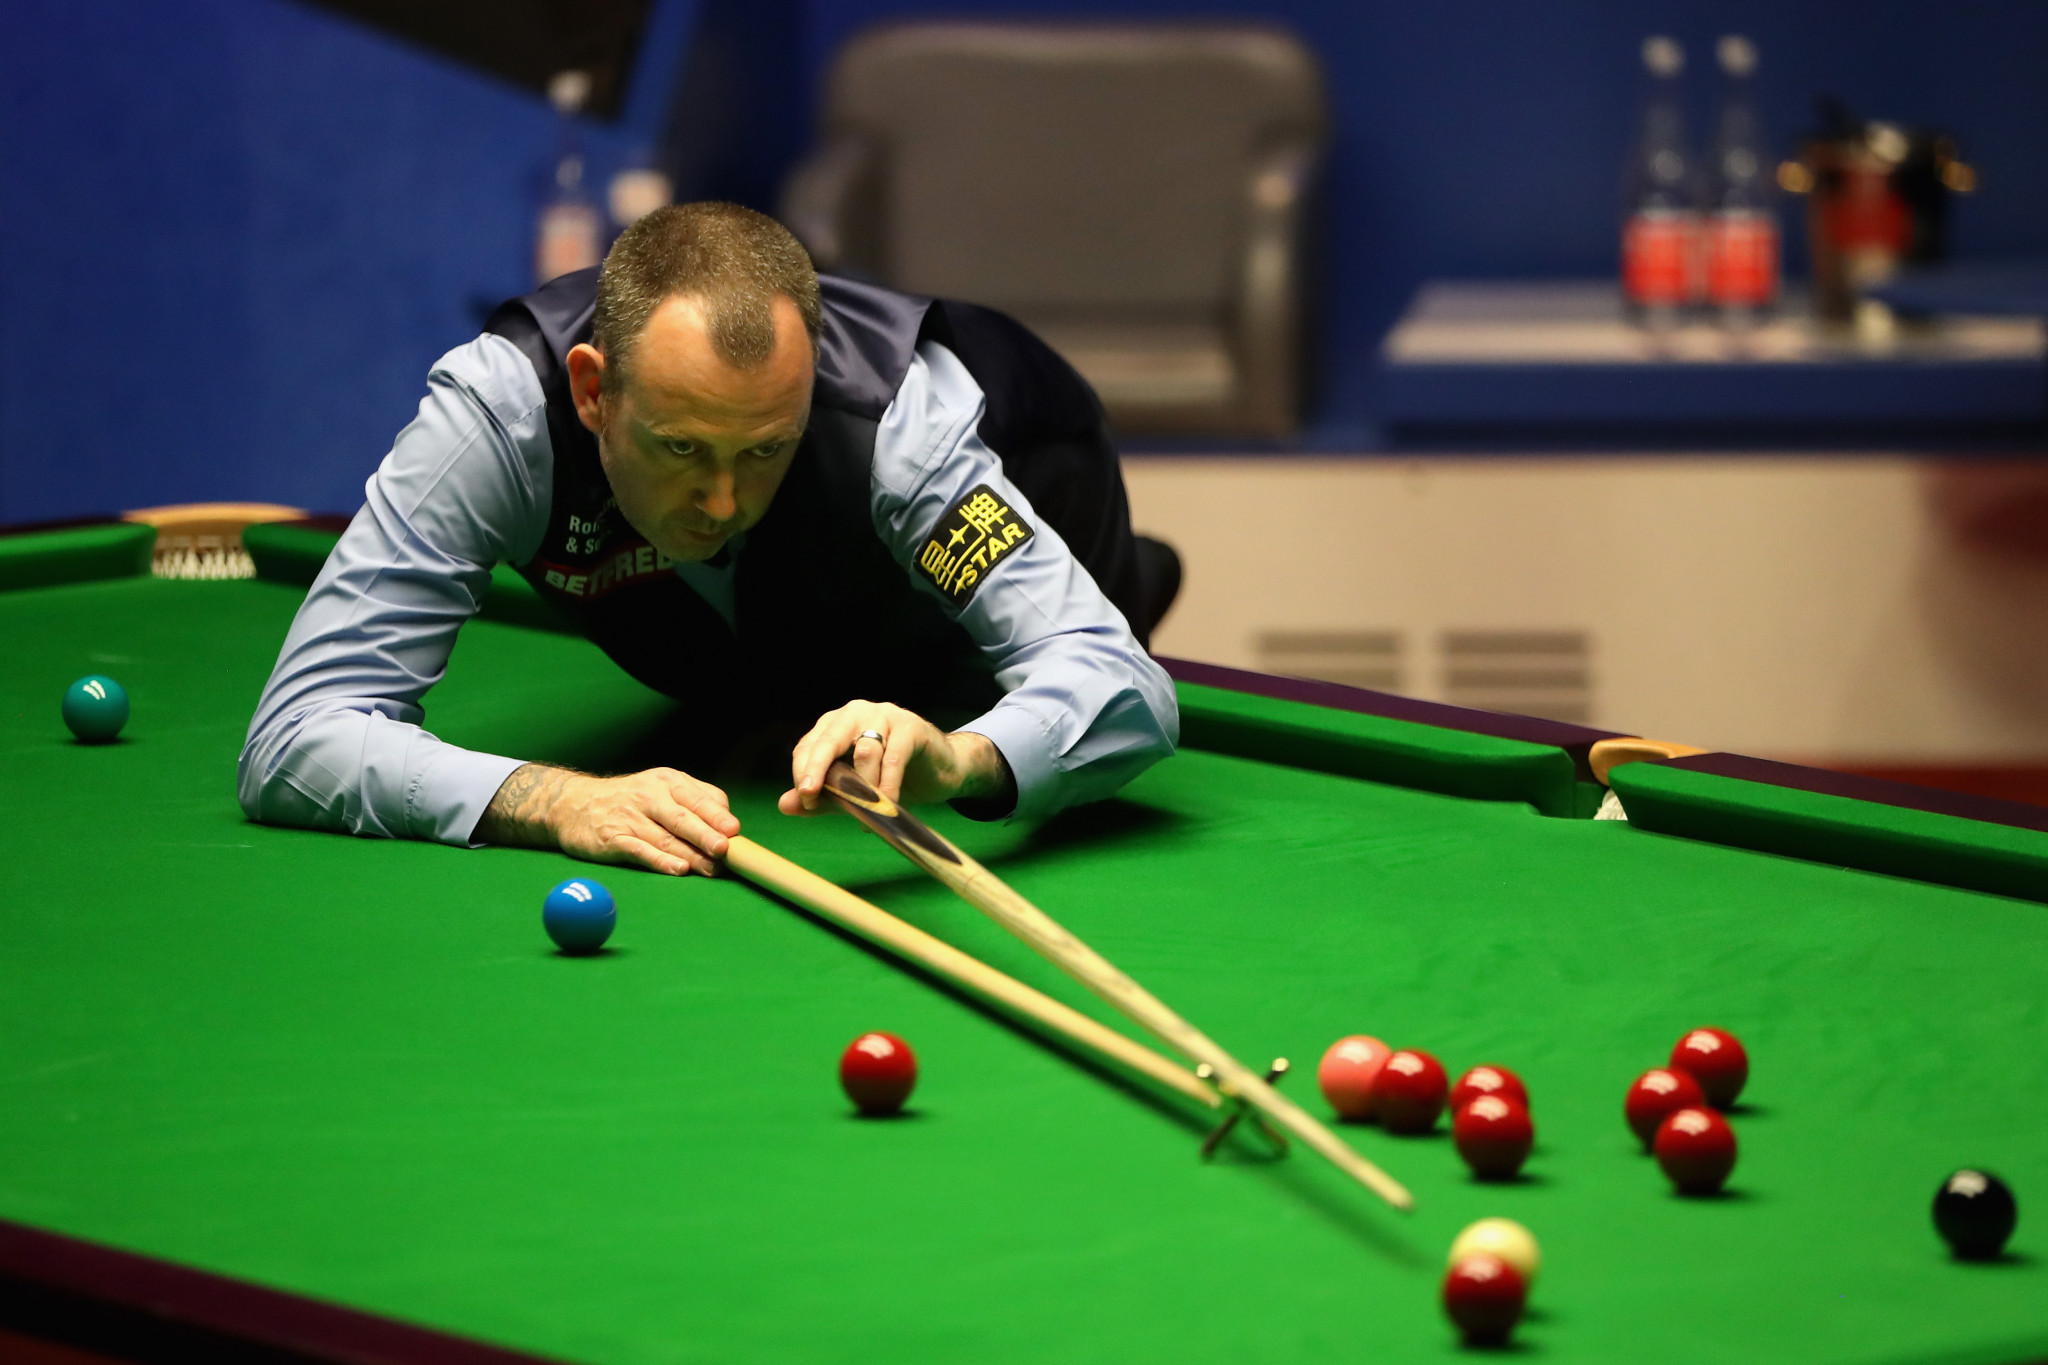 Defending world snooker champion Williams cleared by hospital after chest pains - but then cleared out by Gilbert